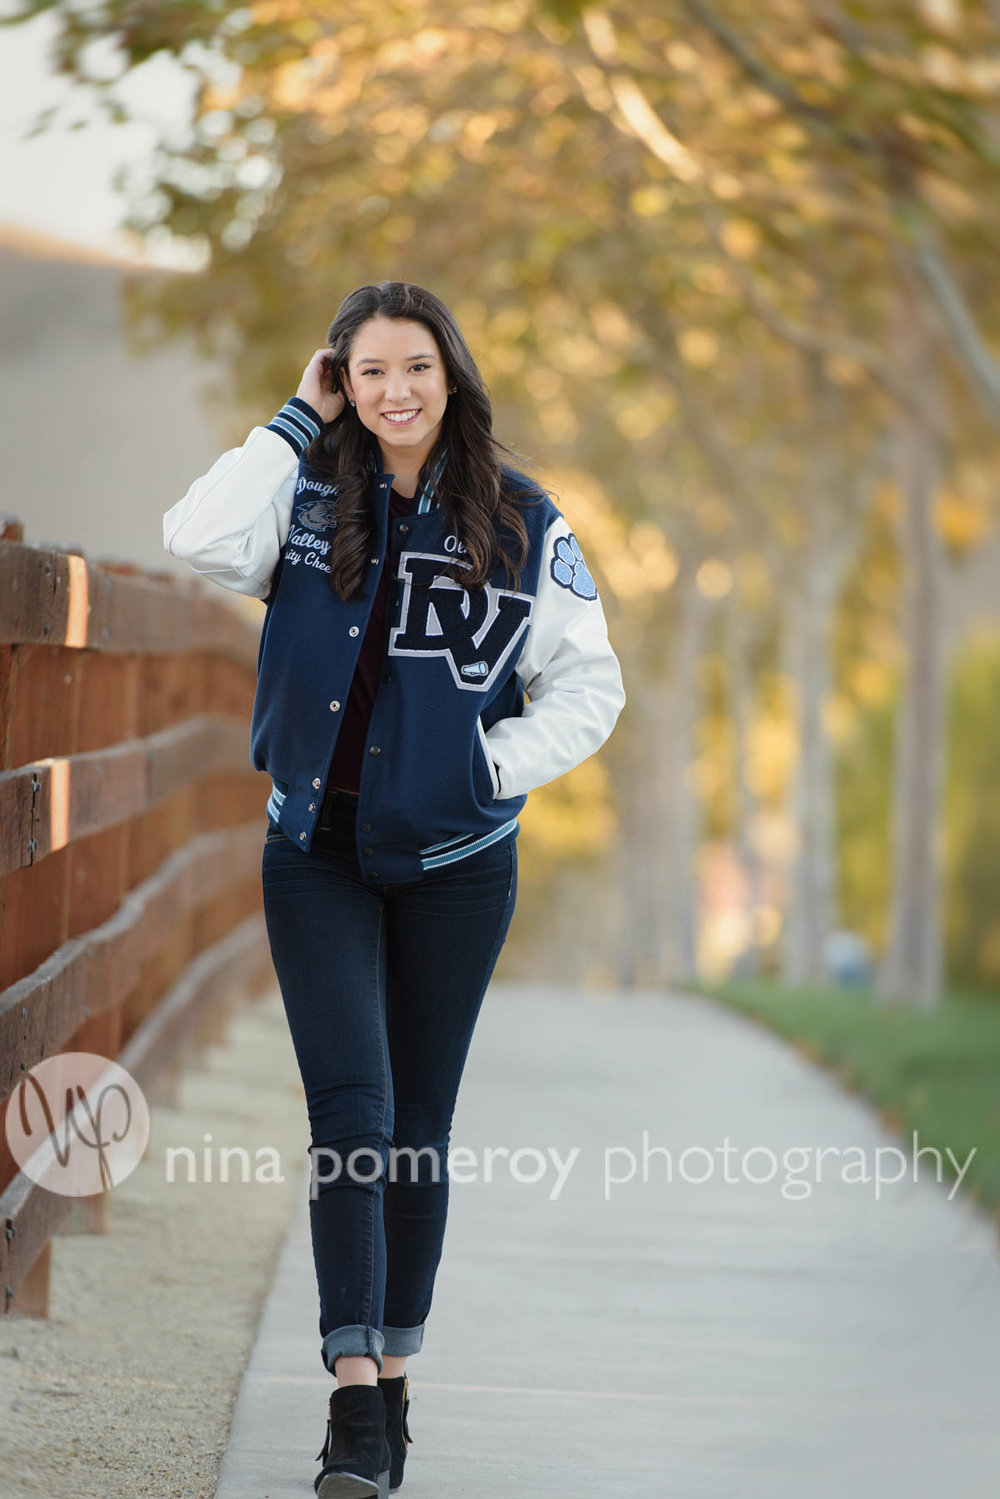 Girls' DVHS Cheer team jacket worn by senior in San Ramon CA by Nina Pomeroy